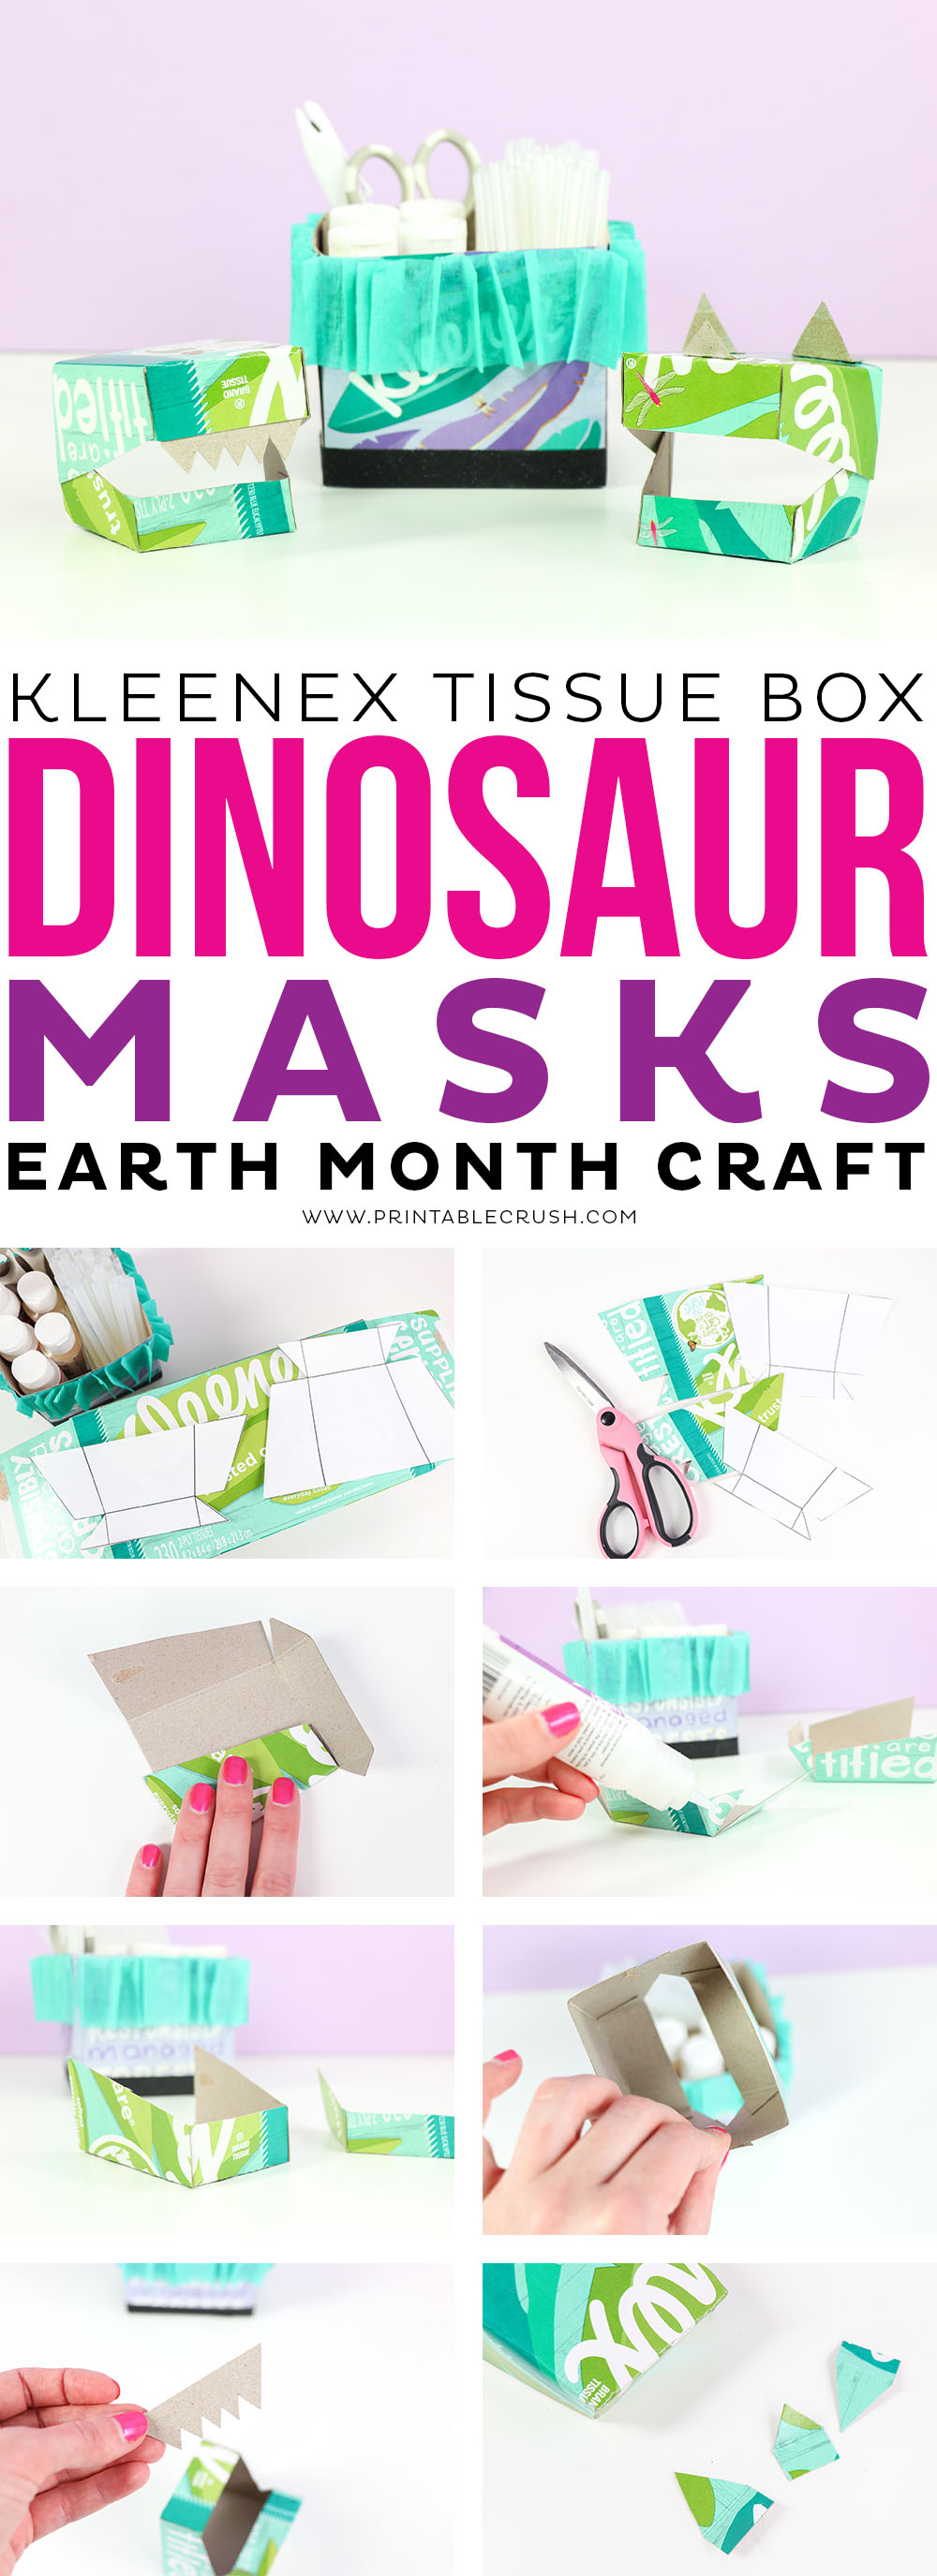 These DIY Dinosaur Masks are the cutest and kids will love this Earth Month Craft made with Kleenex® Tissue Boxes.